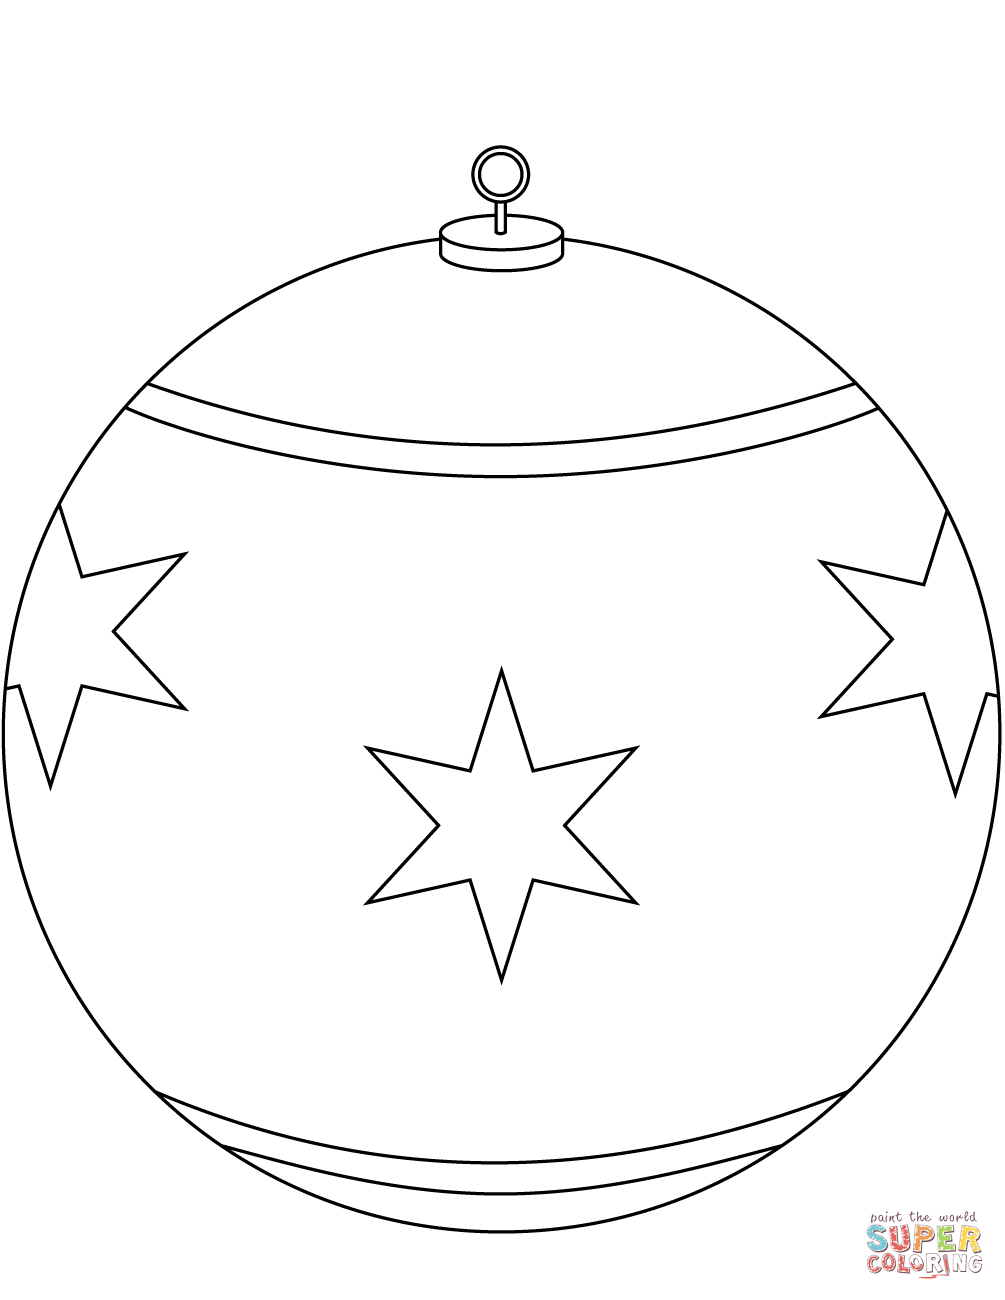 Printable Coloring Pages Christmas Decorations With Round Ornament Page Free